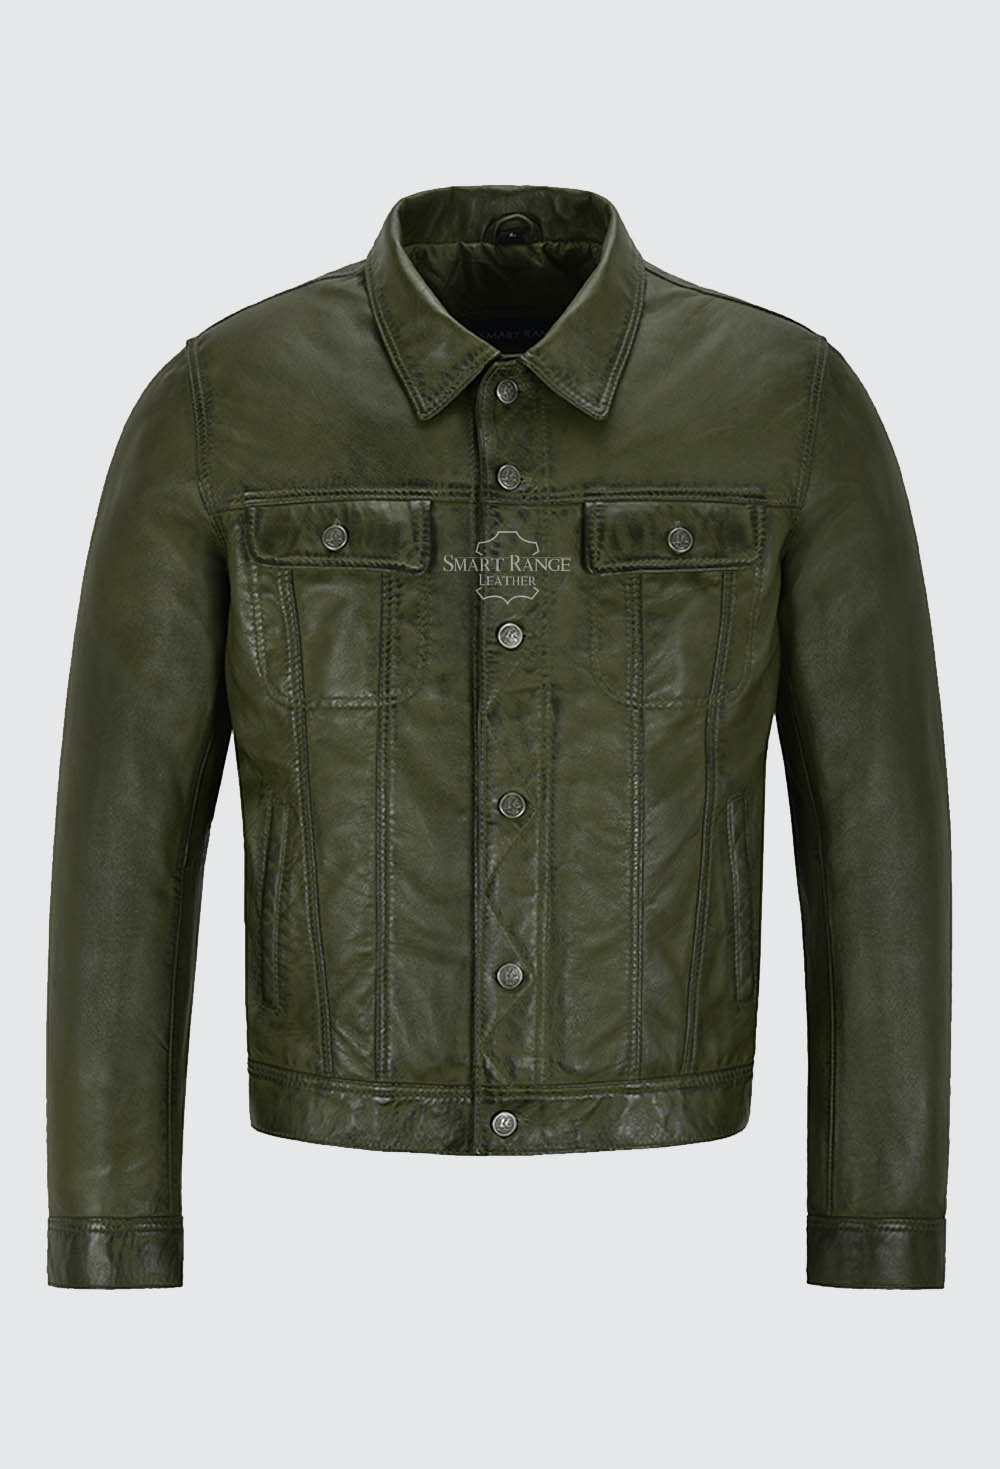 Trucker leather jacket, Classic Trucker jacket, Trucker jackets